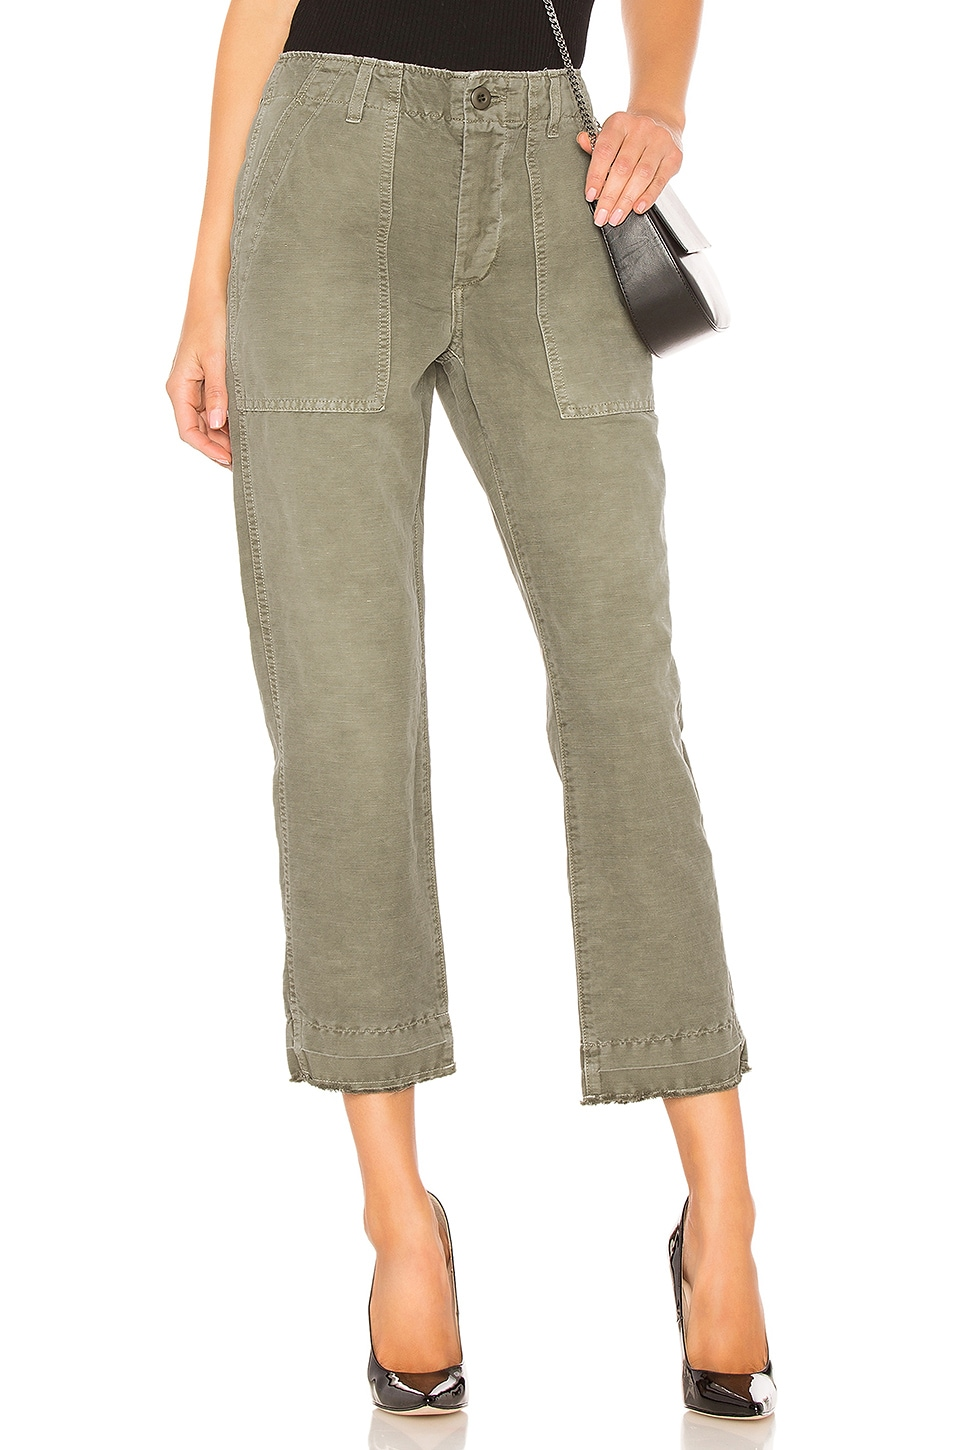 Army Babe Pant